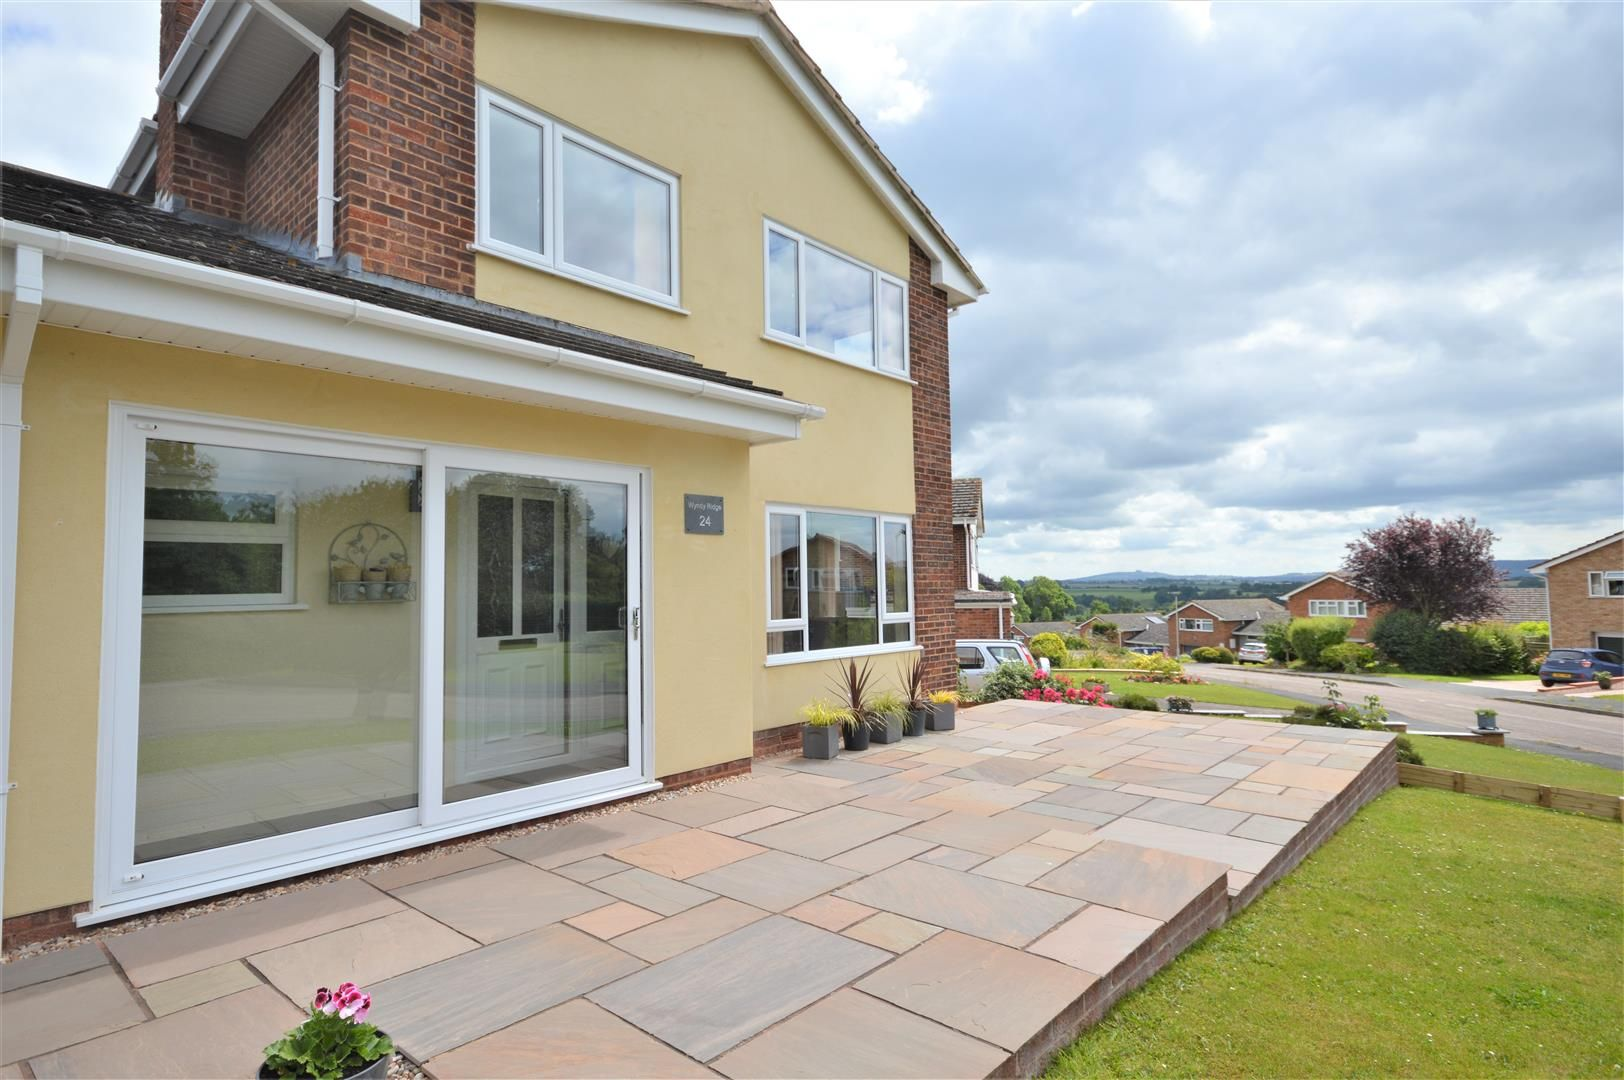 3 bed detached for sale in Kings Caple  - Property Image 2